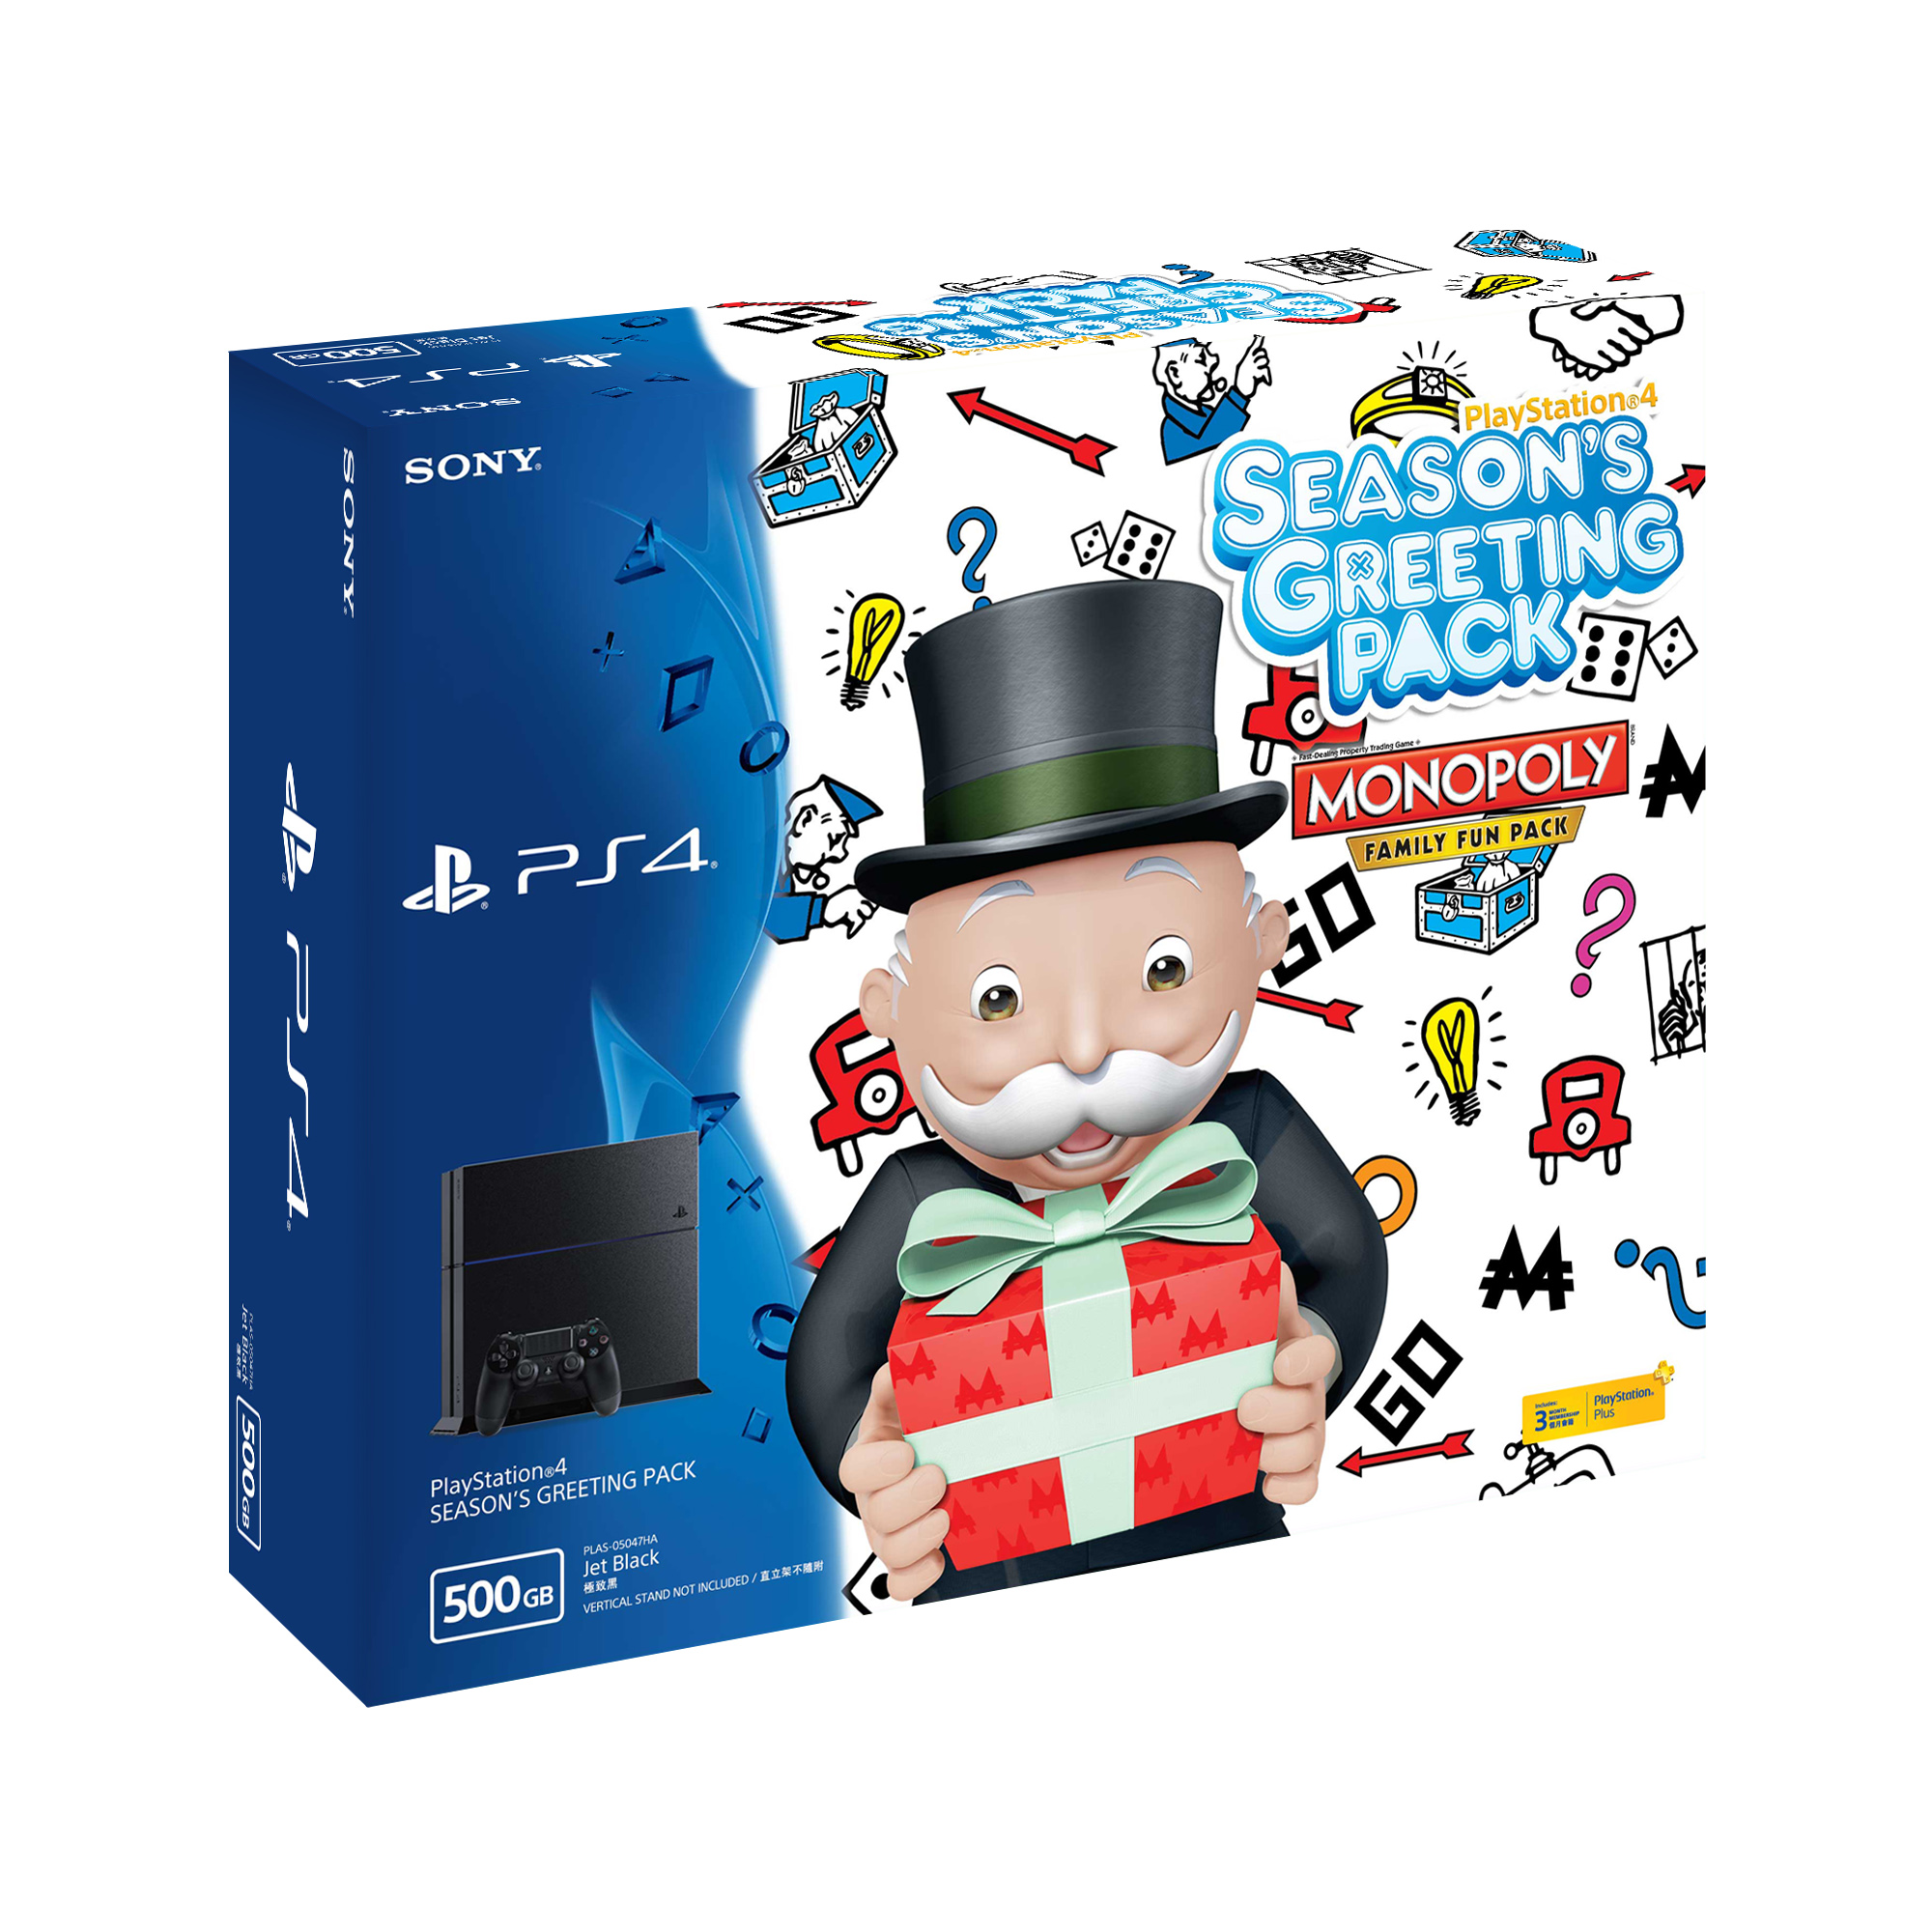 Celebrate This Year's Christmas With PS4 Bundles - Lowyat.NET